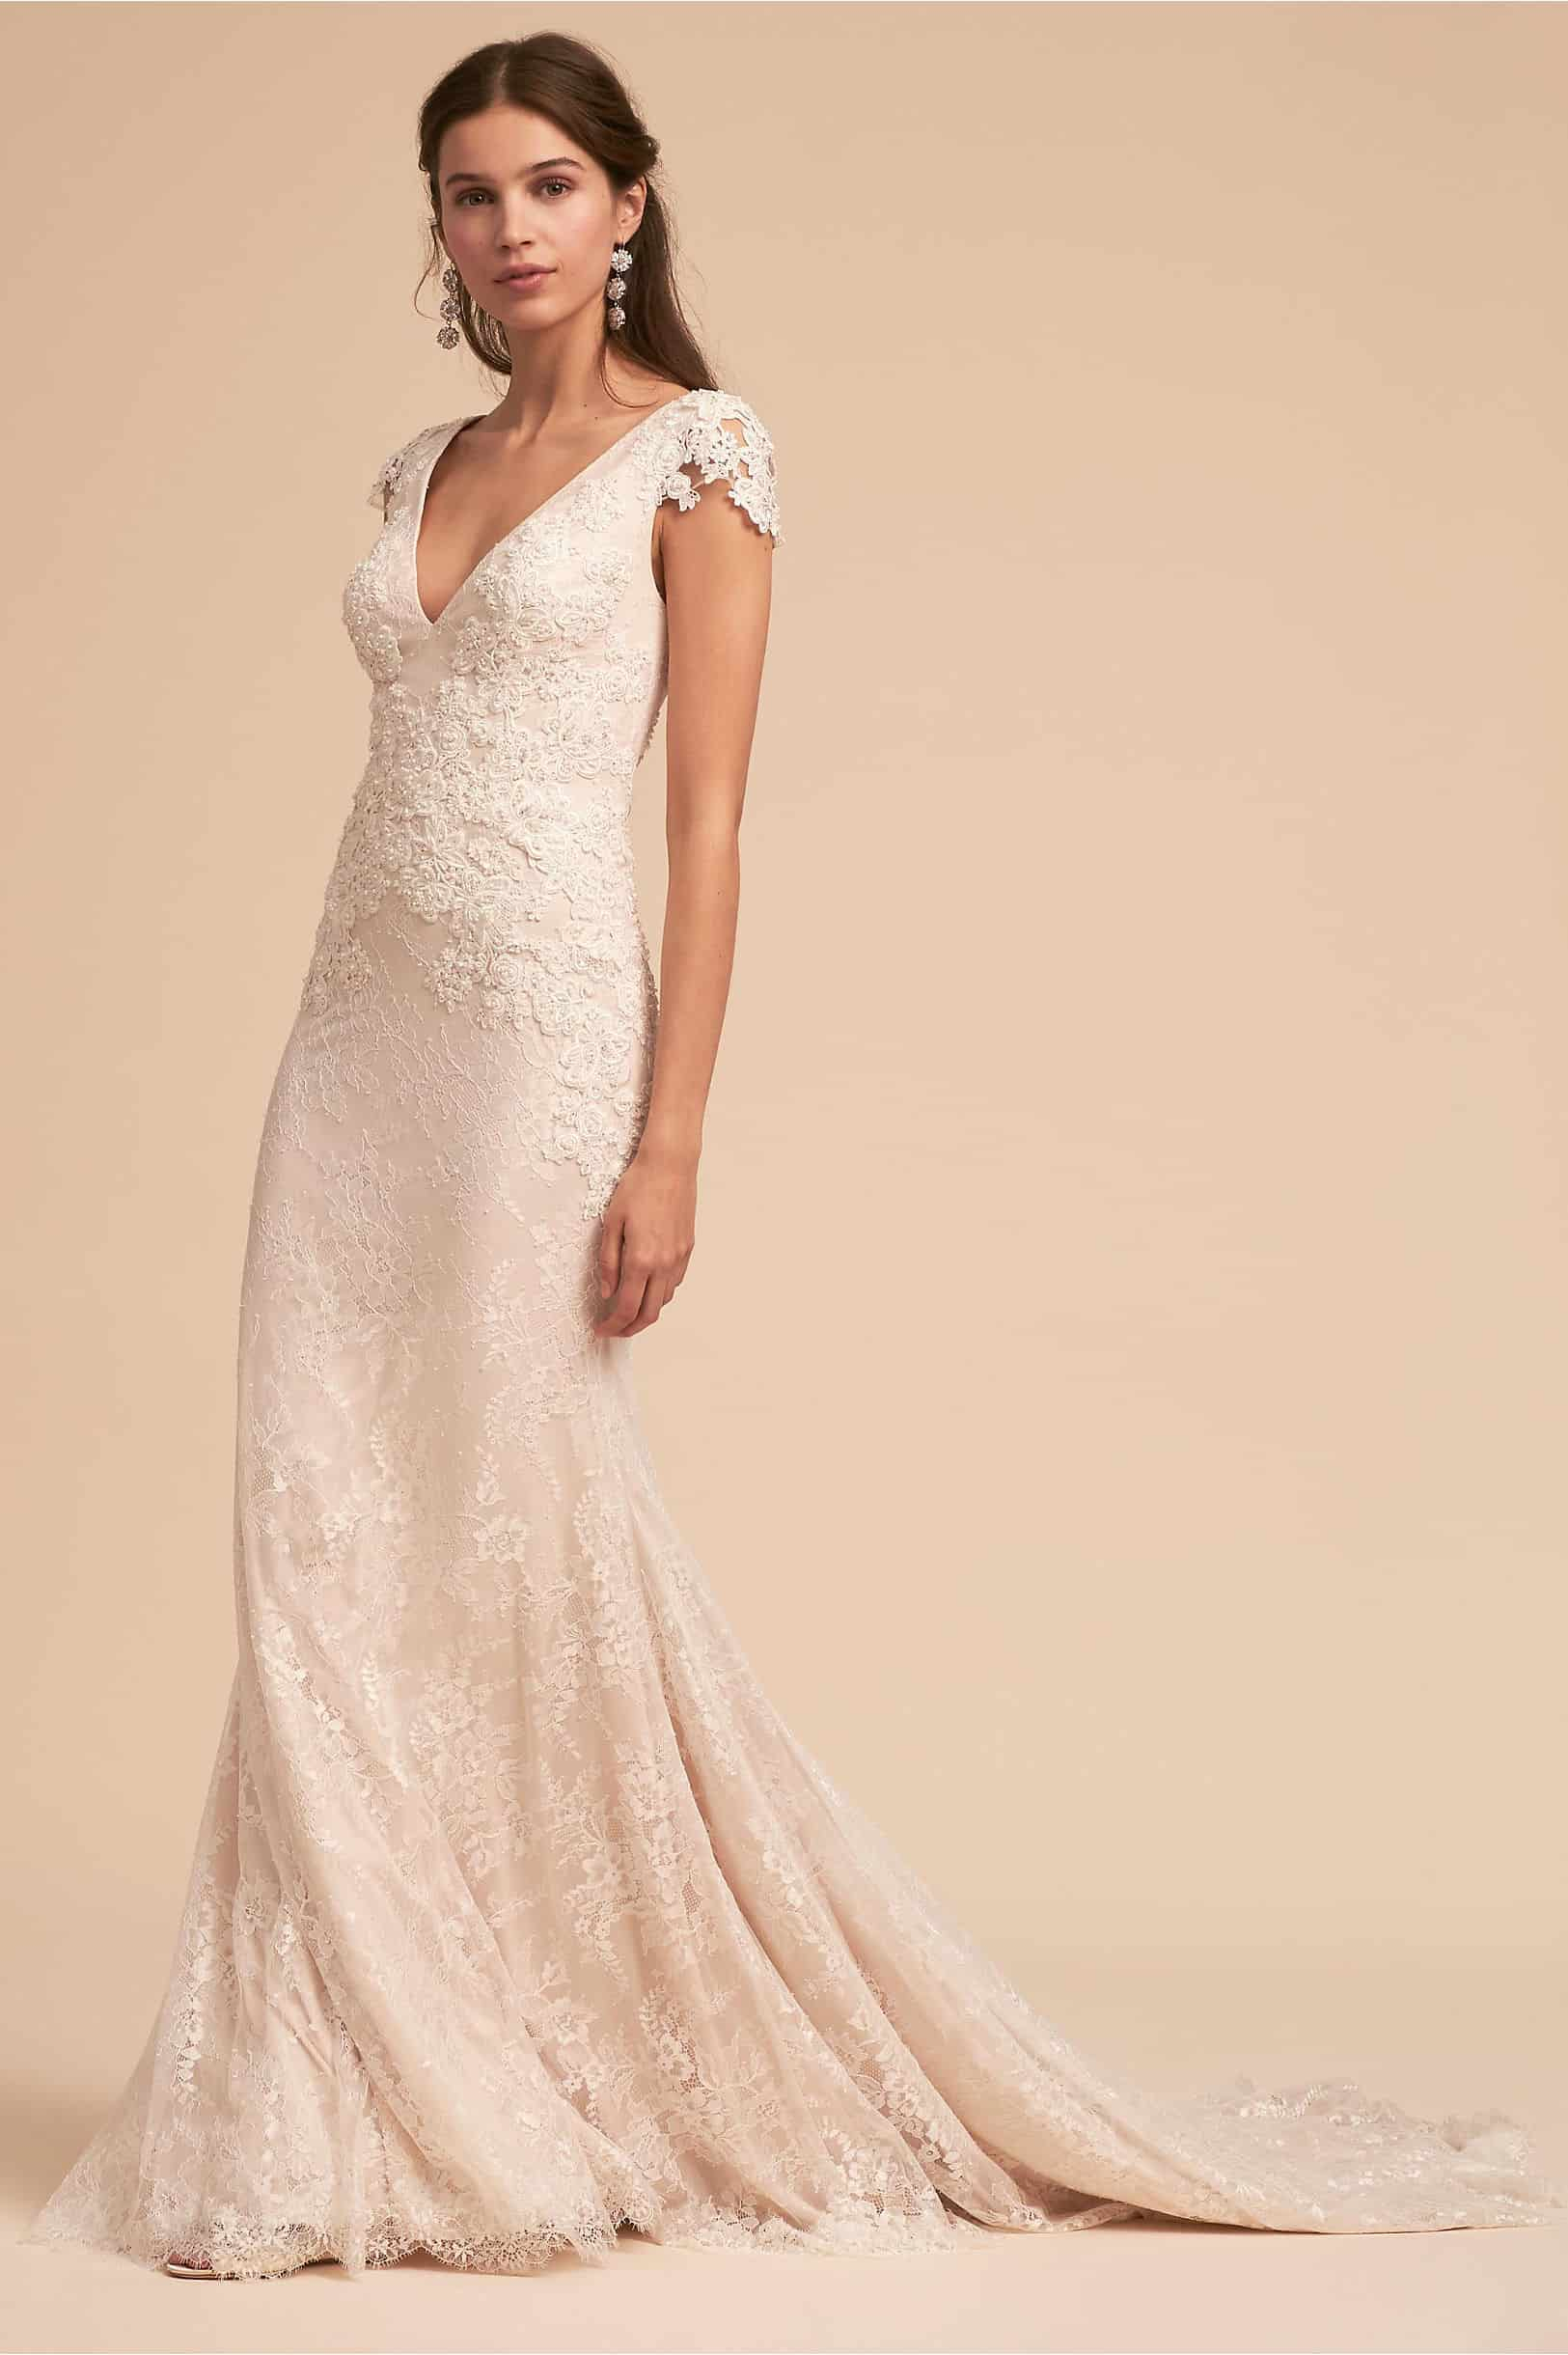 85e8dac2f4 Ivory Lace Cap Sleeve V Neck Wedding Dress